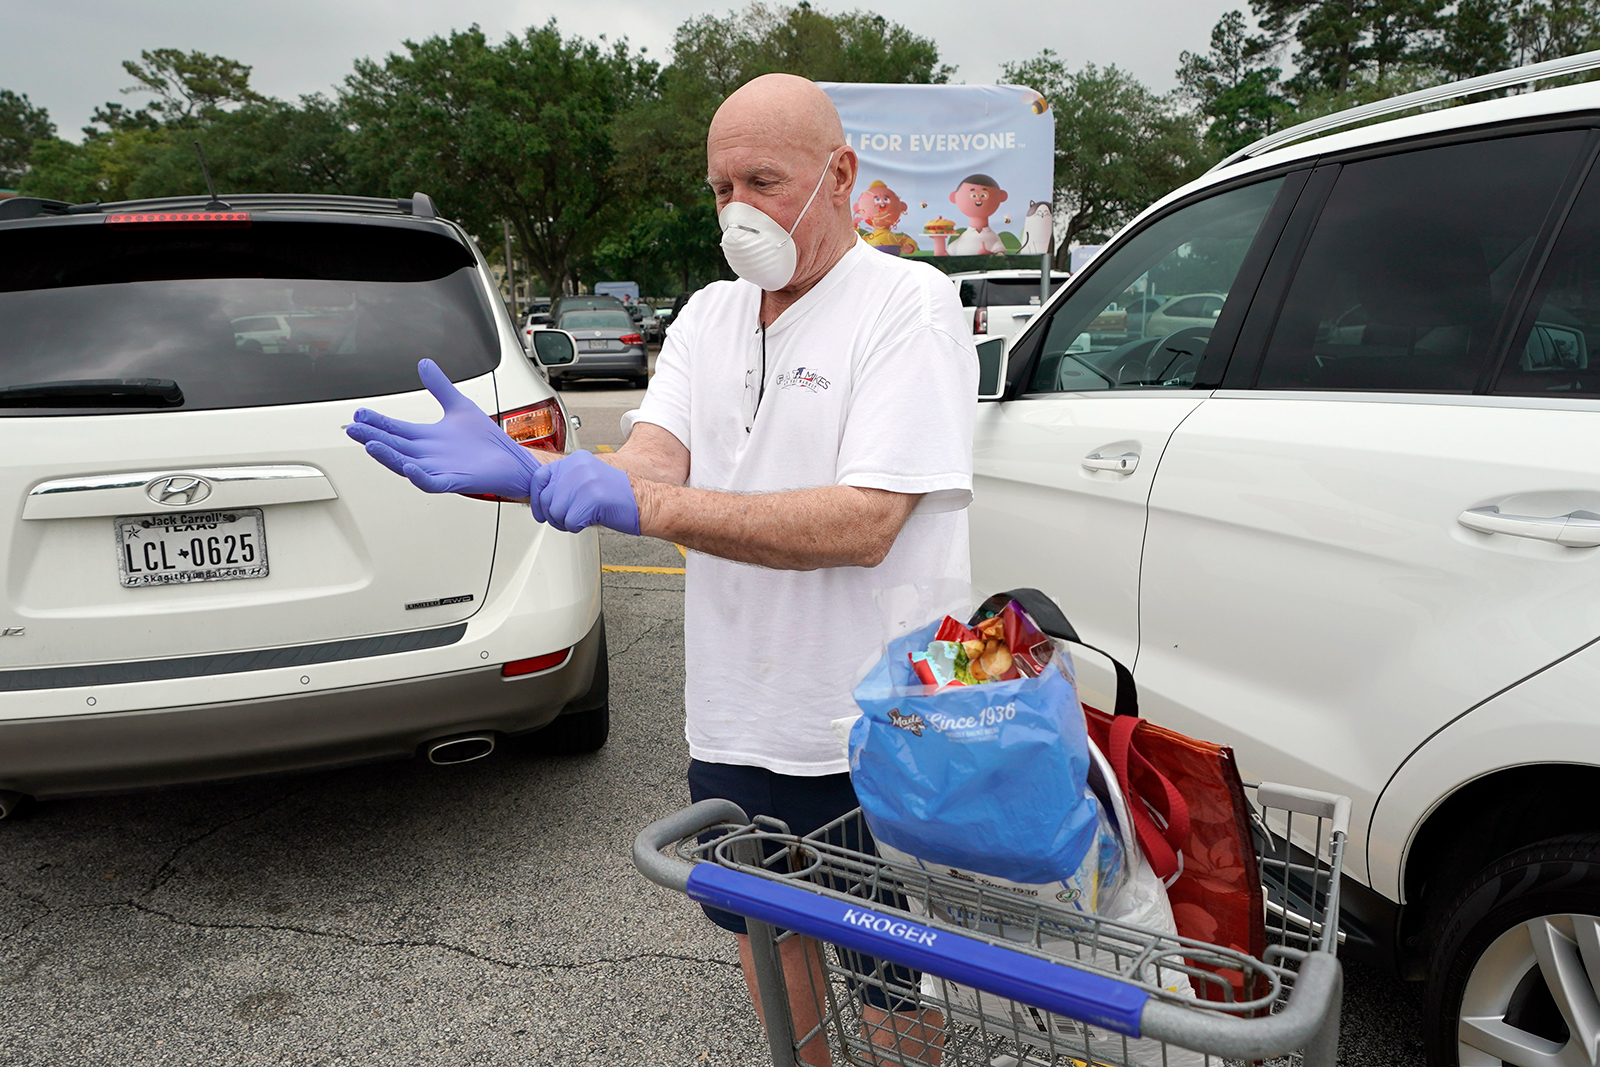 Gary Towler puts on gloves to protect against coronavirus, before entering a grocery store on April 22, in Spring, Texas.